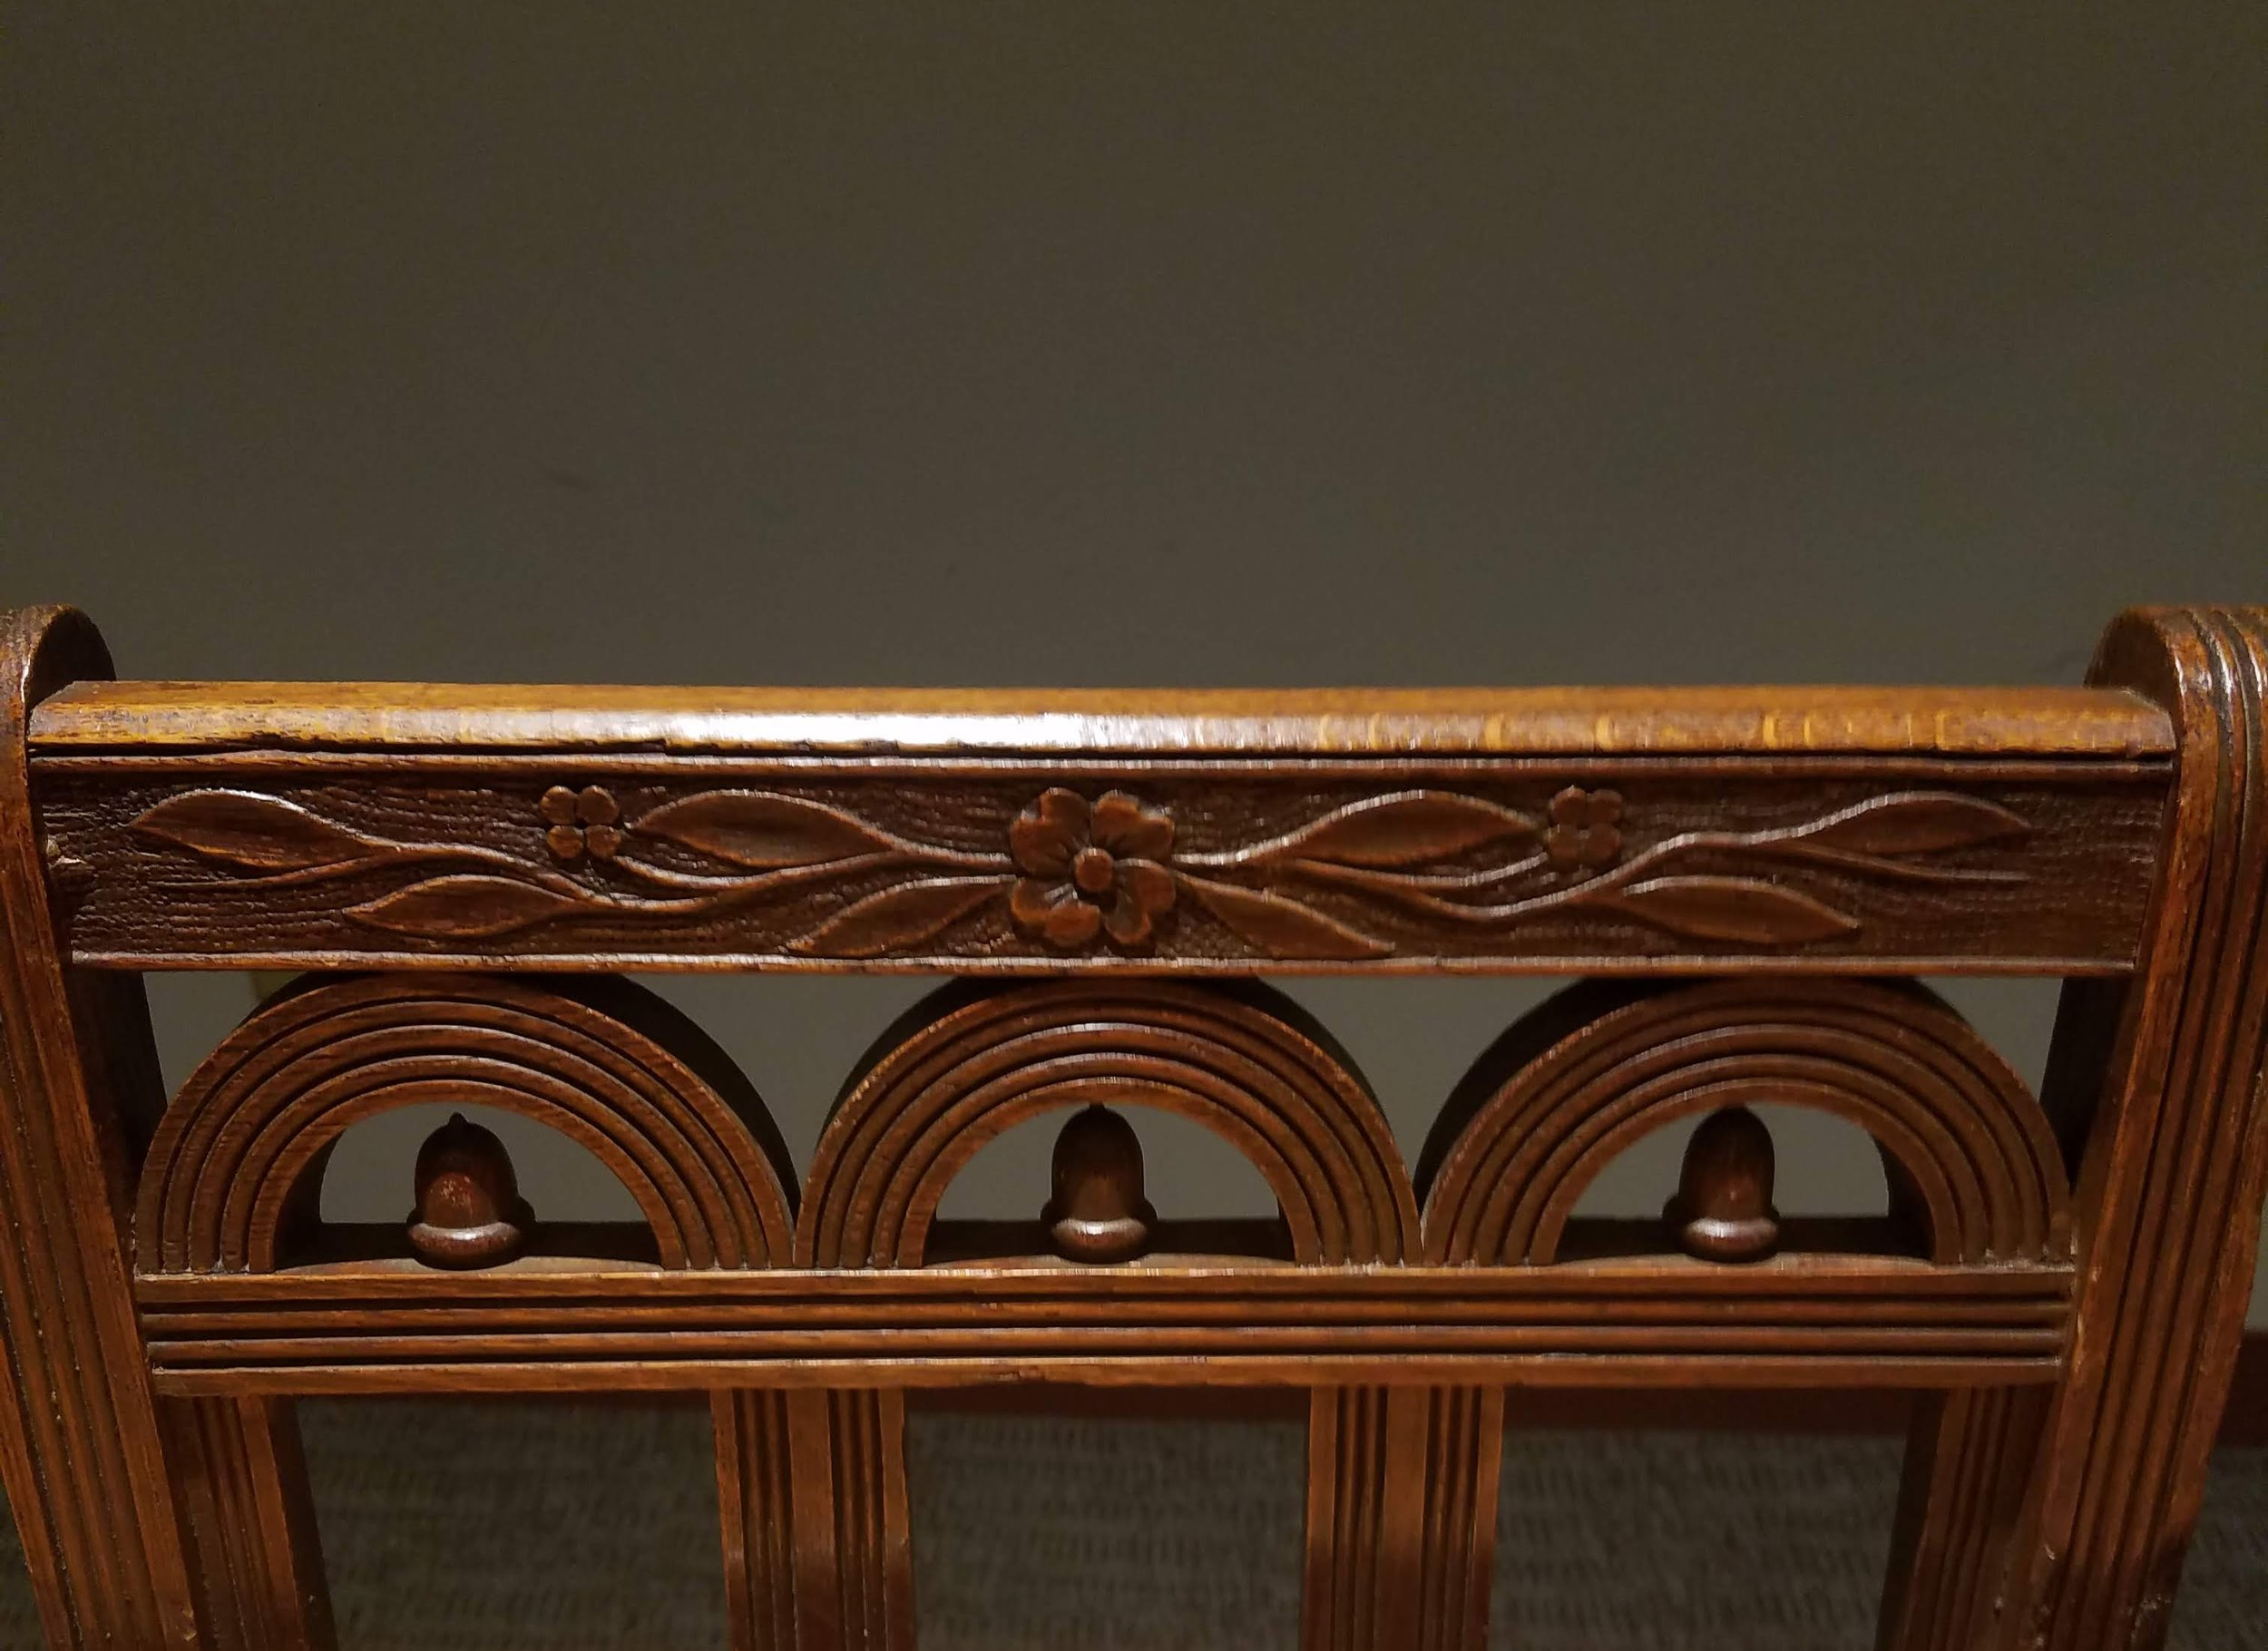 Details of one of the oak chairs.